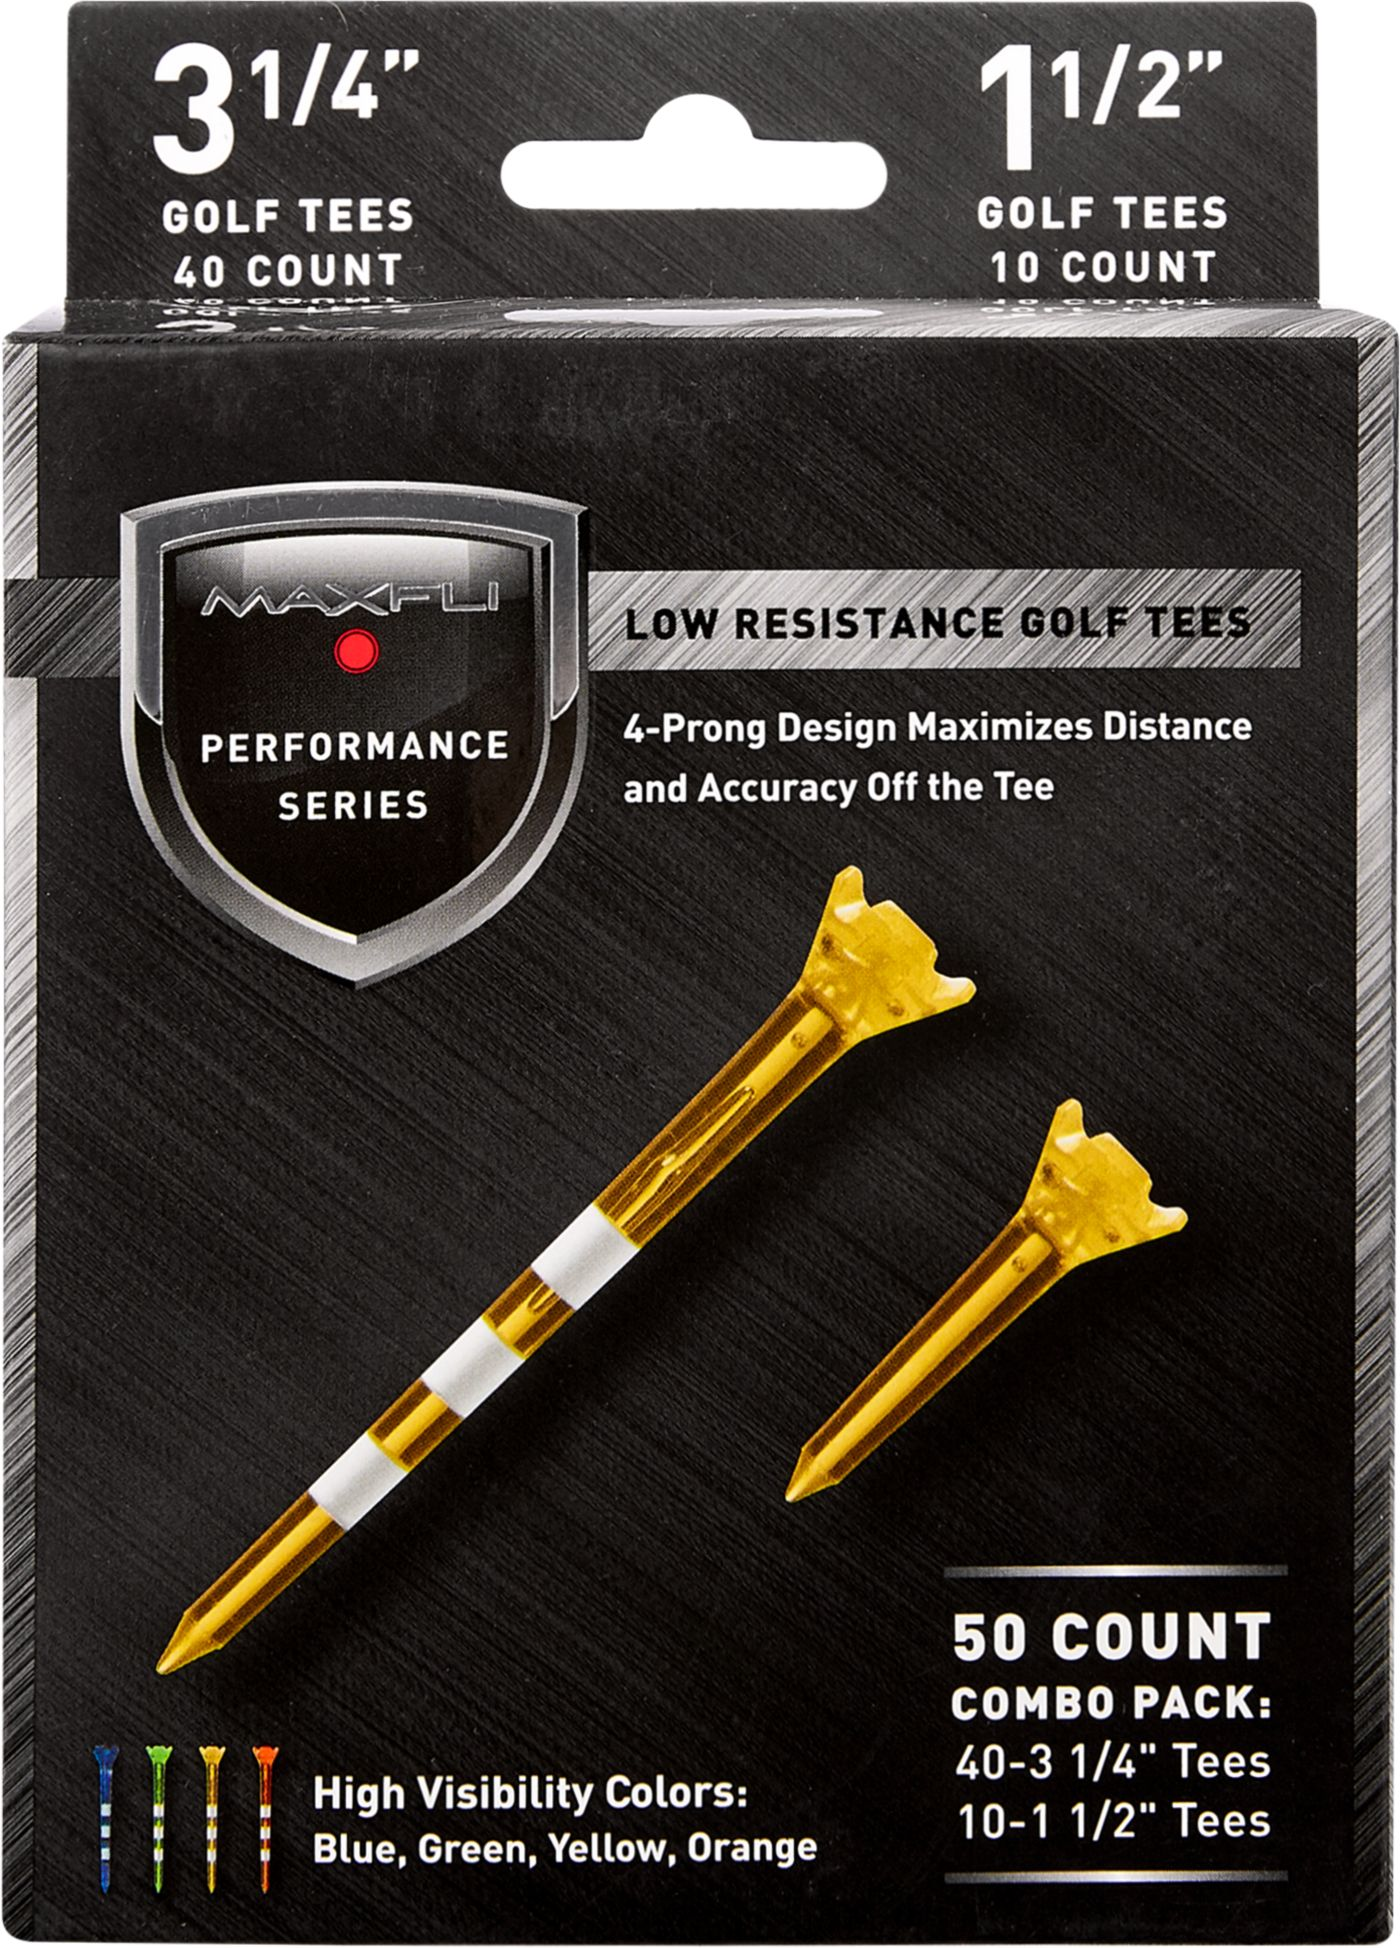 "Maxfli Performance Series Low Resistance 3.25"" & 1.5"" Translucent Golf Tees – 50-Pack"